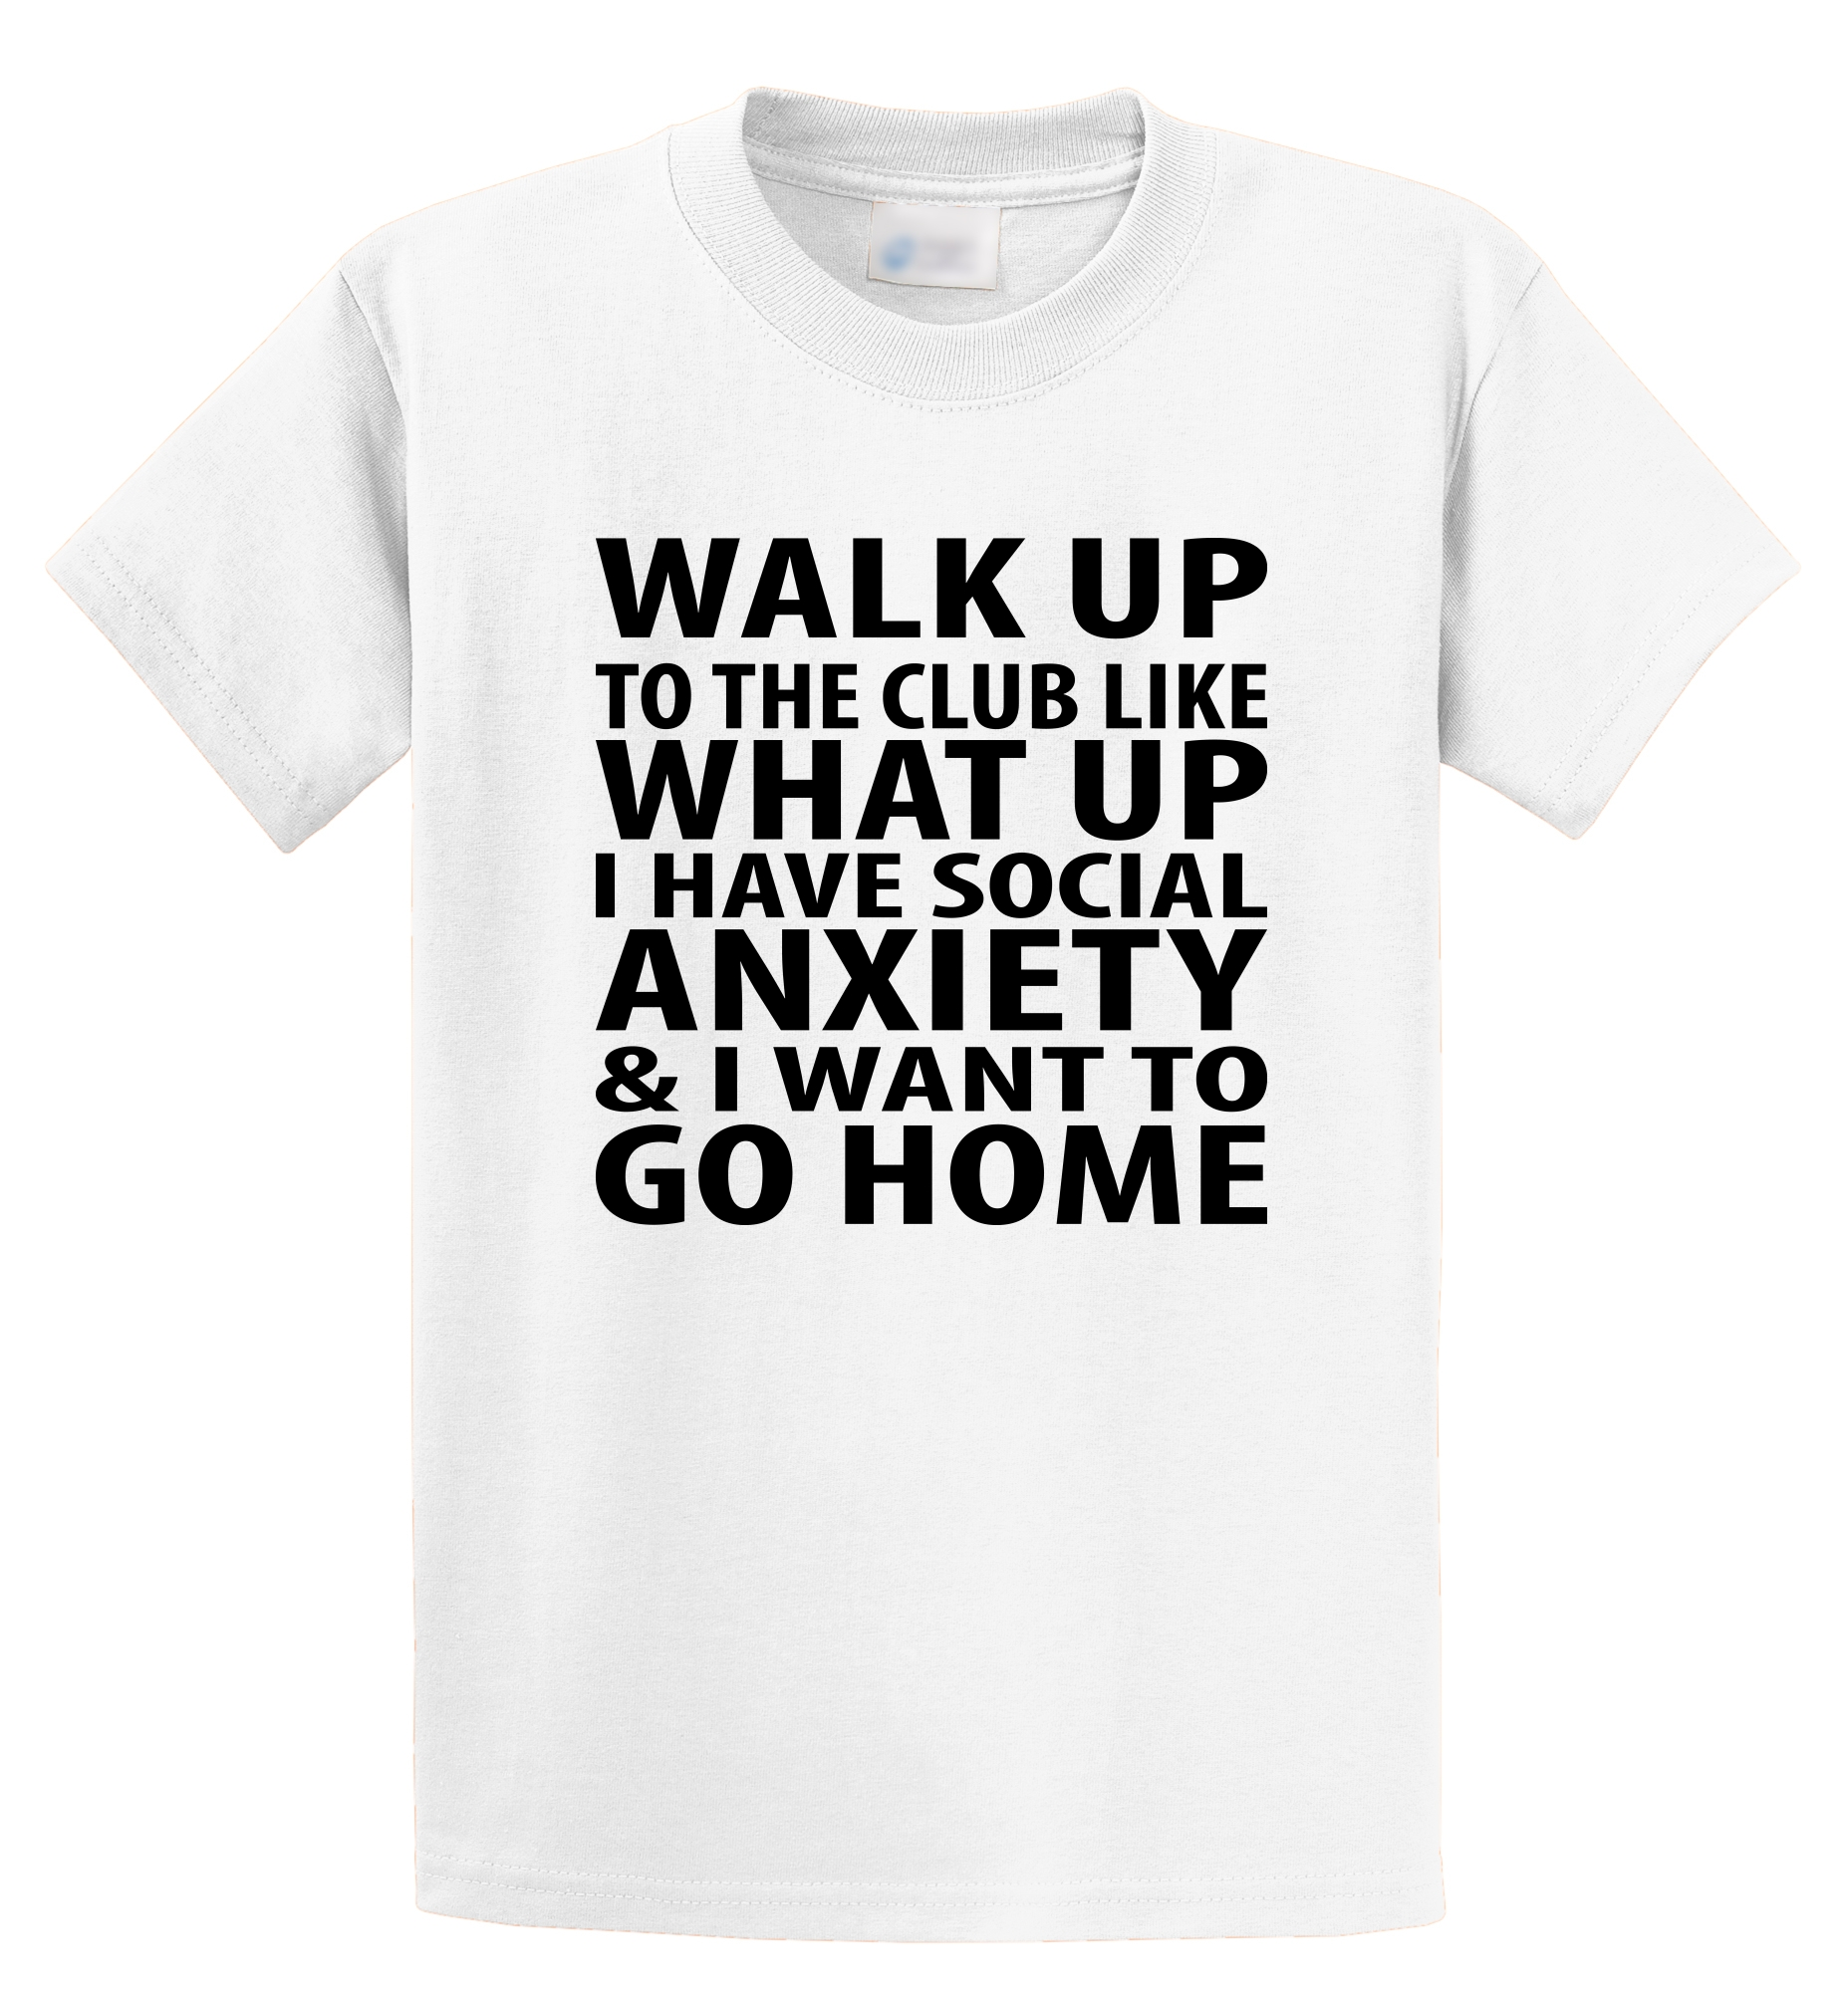 T Shirt Design Template Zomer Walk Up To The Club Funny Antisocial Song Music 16 Cols O-Neck Short-Sleeve T Shirts For Men